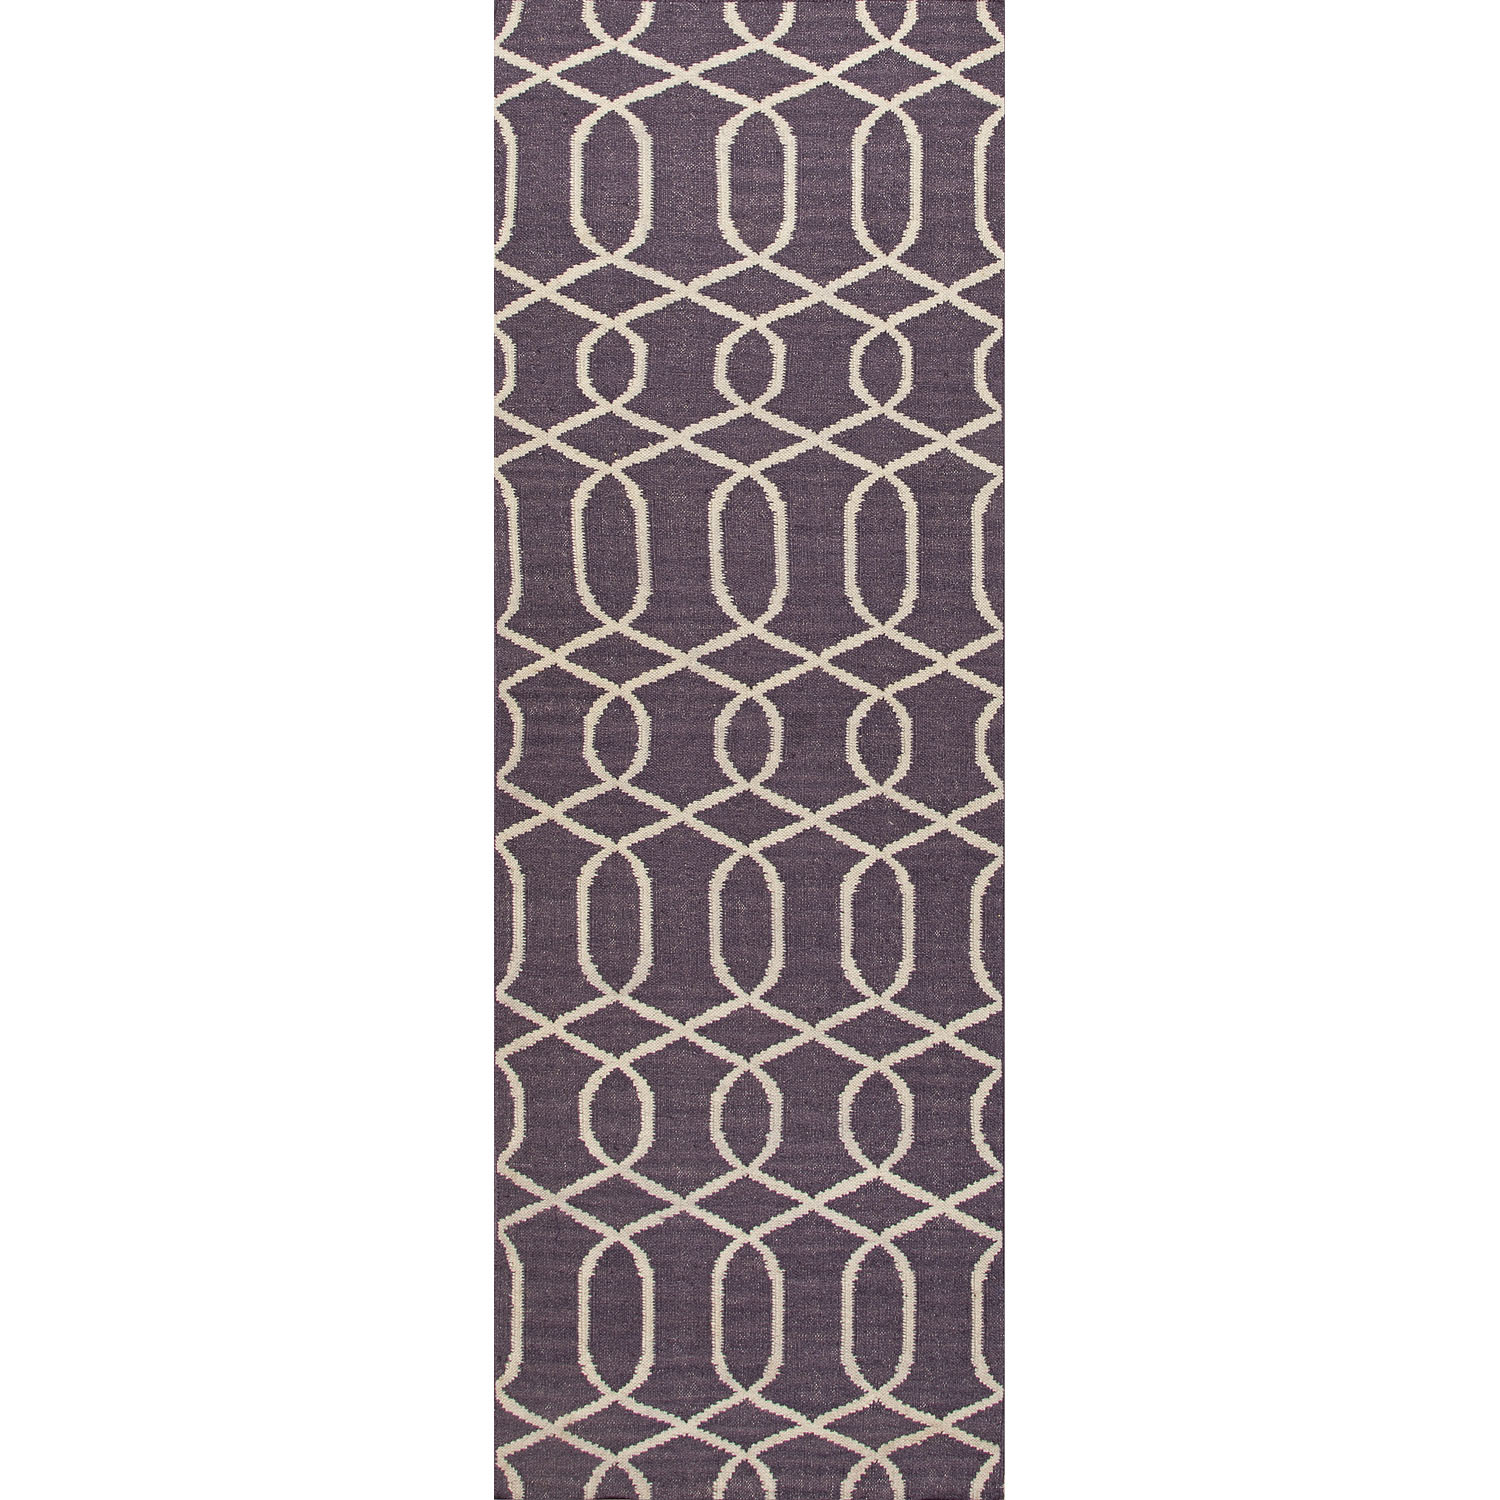 Wildon Home  Arebela Hand-Woven Continental Plum Area Rug